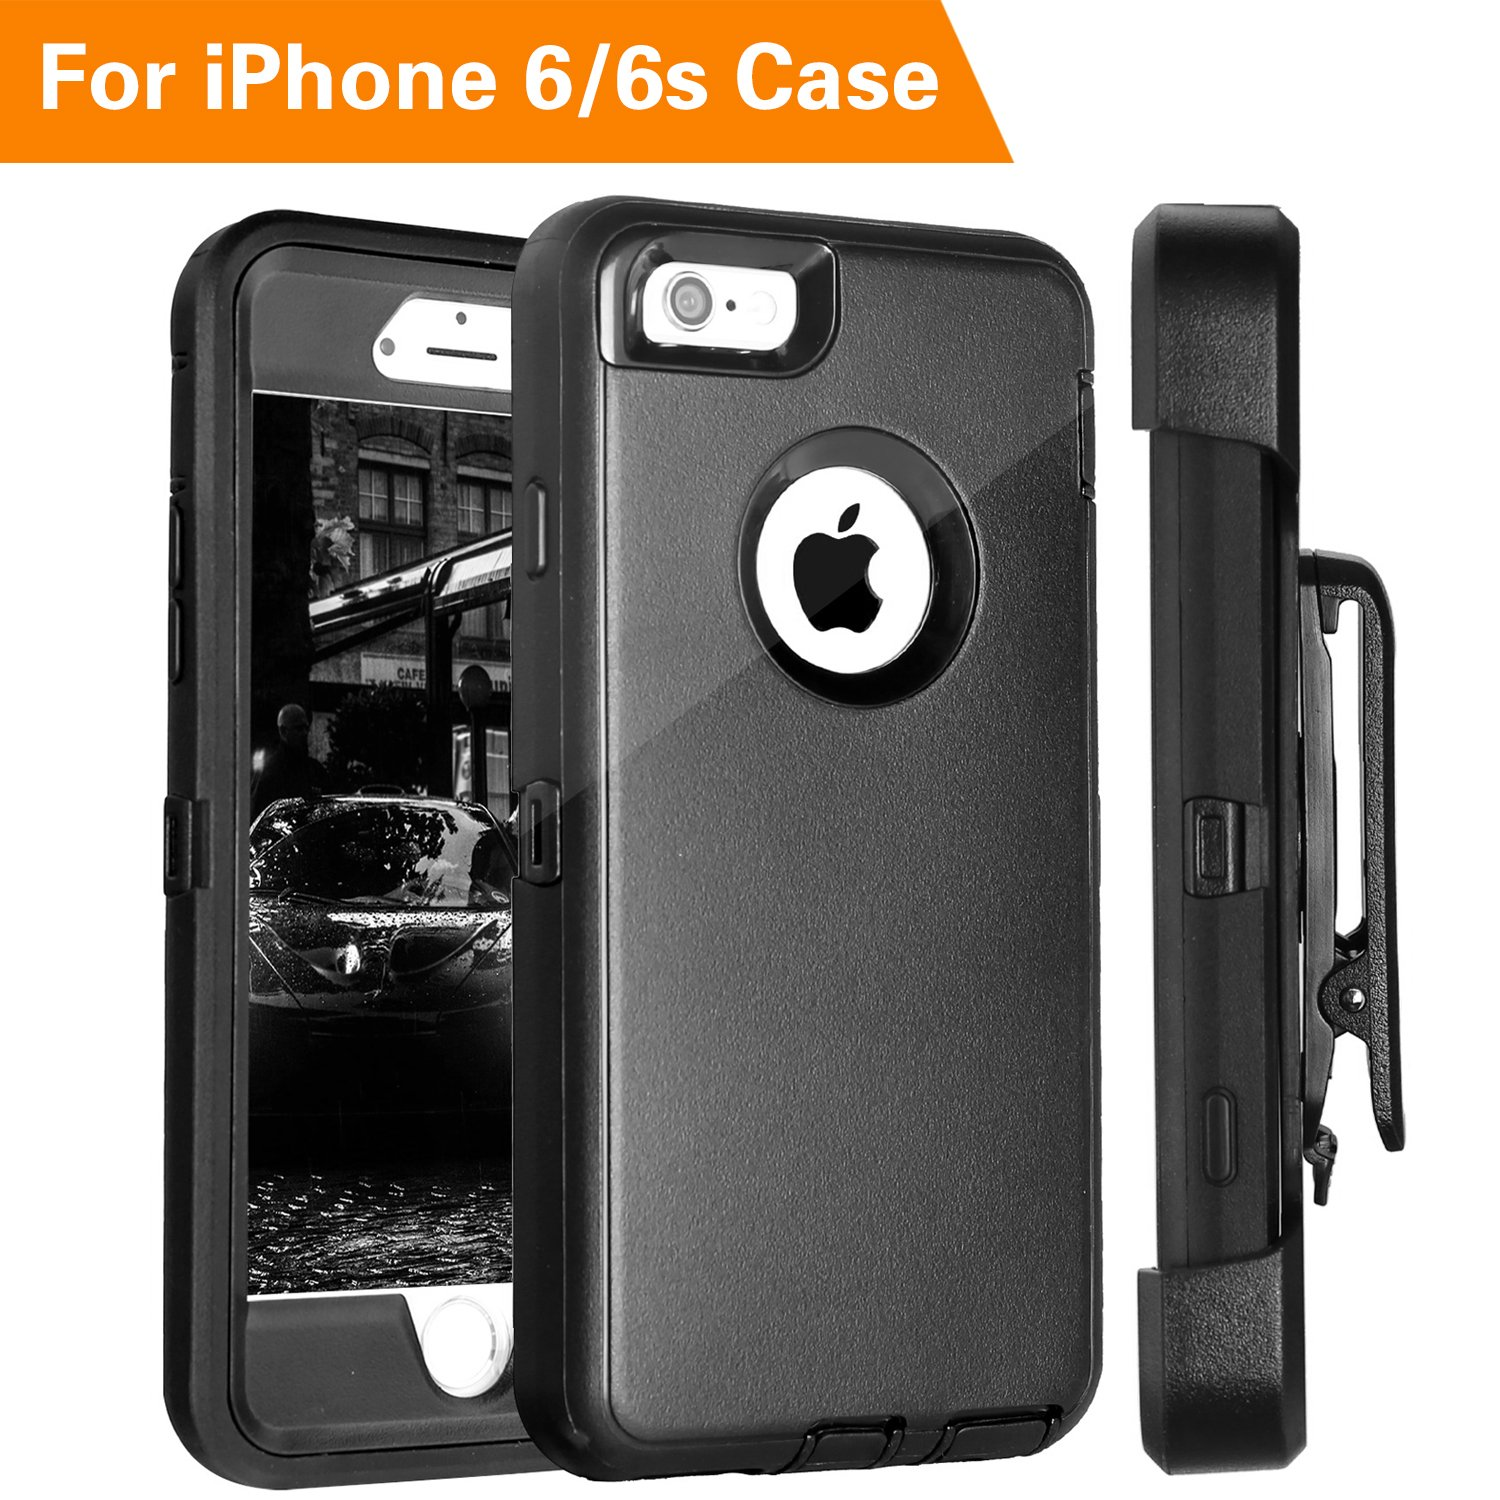 FOGEEK iPhone 6 Case, Heavy Duty PC + TPU Combo Protective Defender Case for iPhone 6/6S w/360 Degree Rotary Belt Clip & Kickstand (Black)